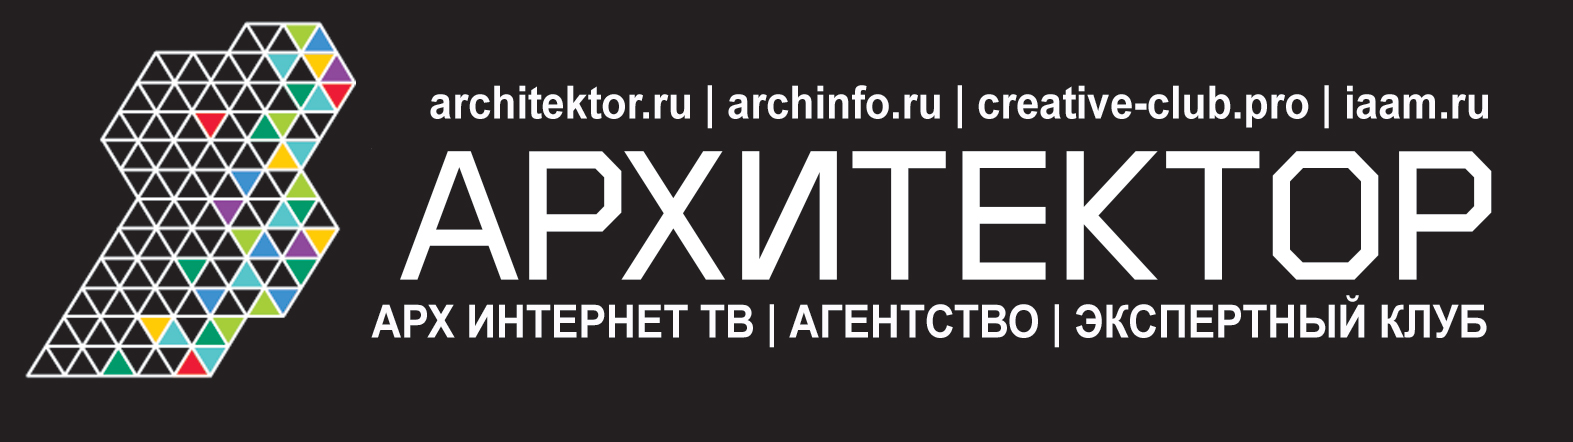 Architektorru logo TV